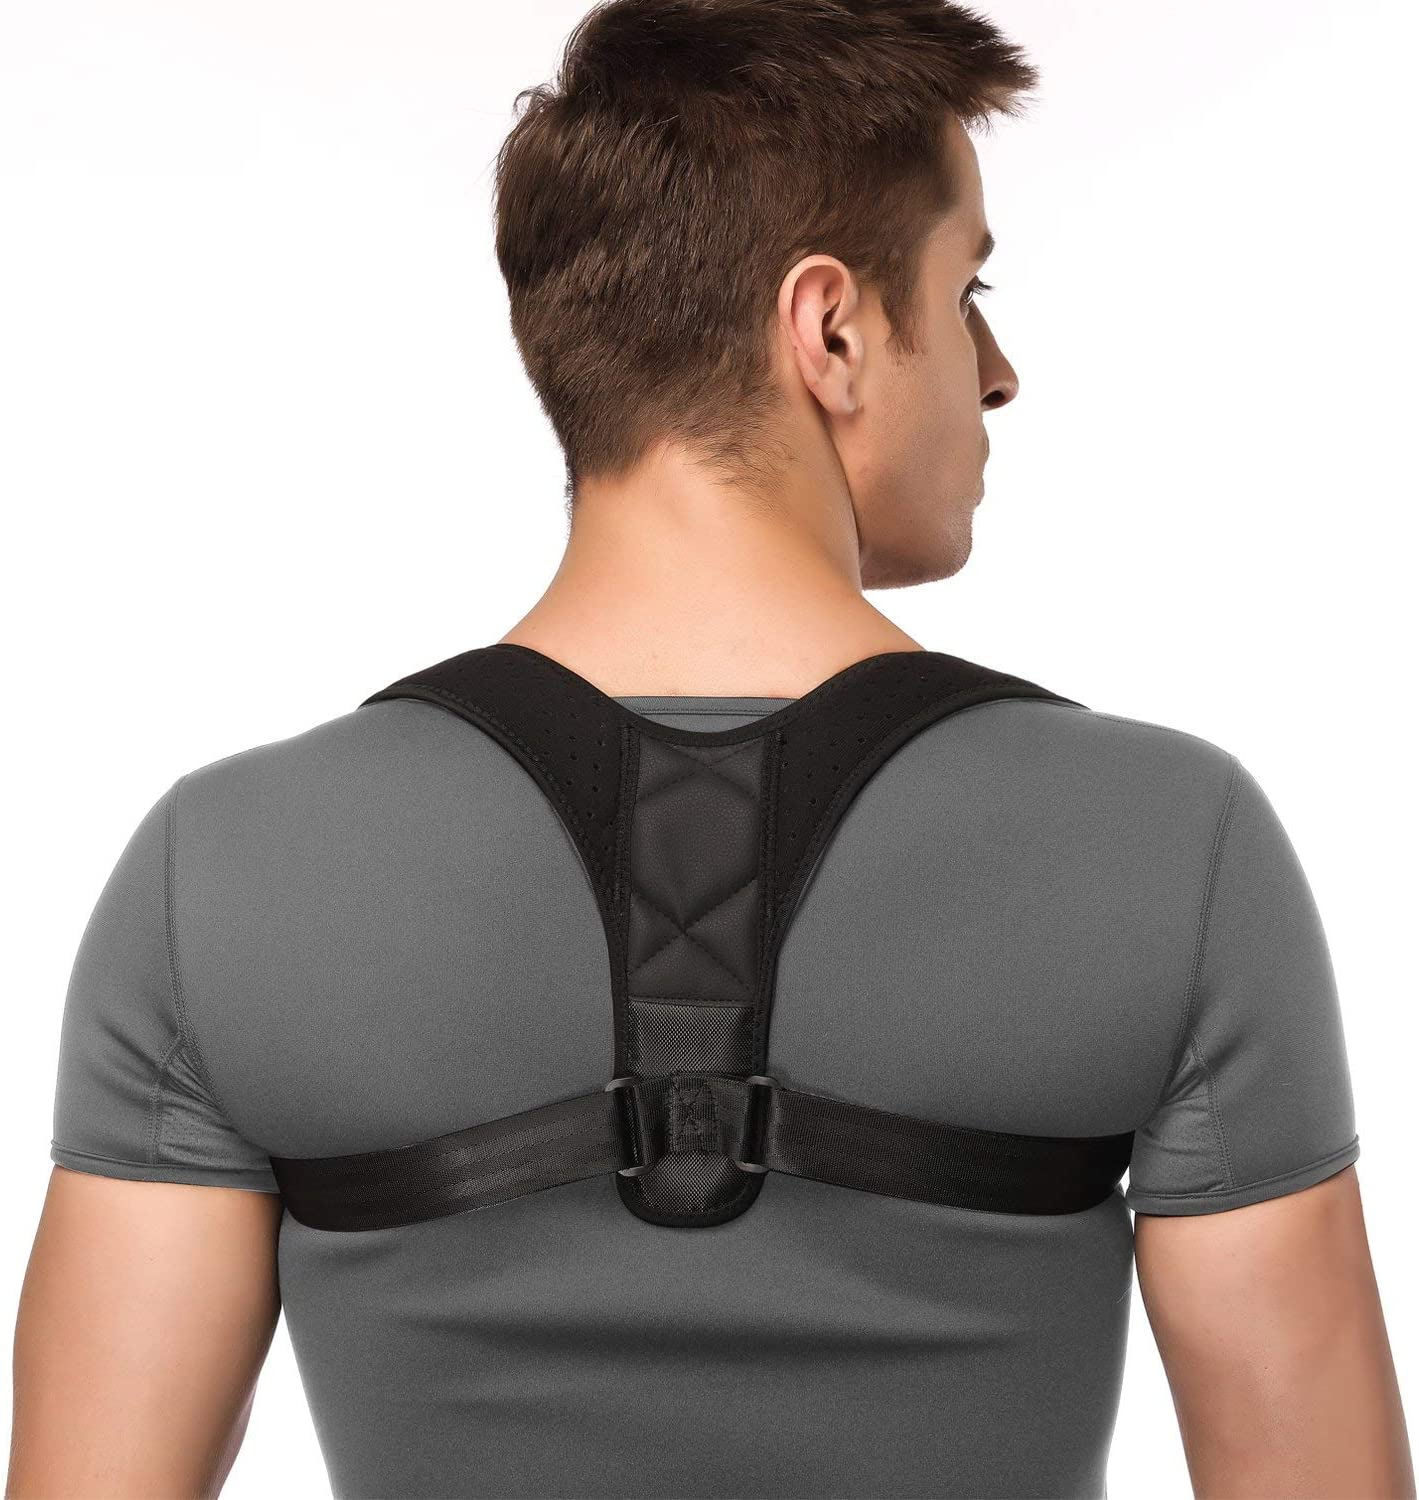 M, White Unisex AOFIT Upgraded Version 10PCS Magnets Back Support Belt for Posture Correction and Back Pain Support